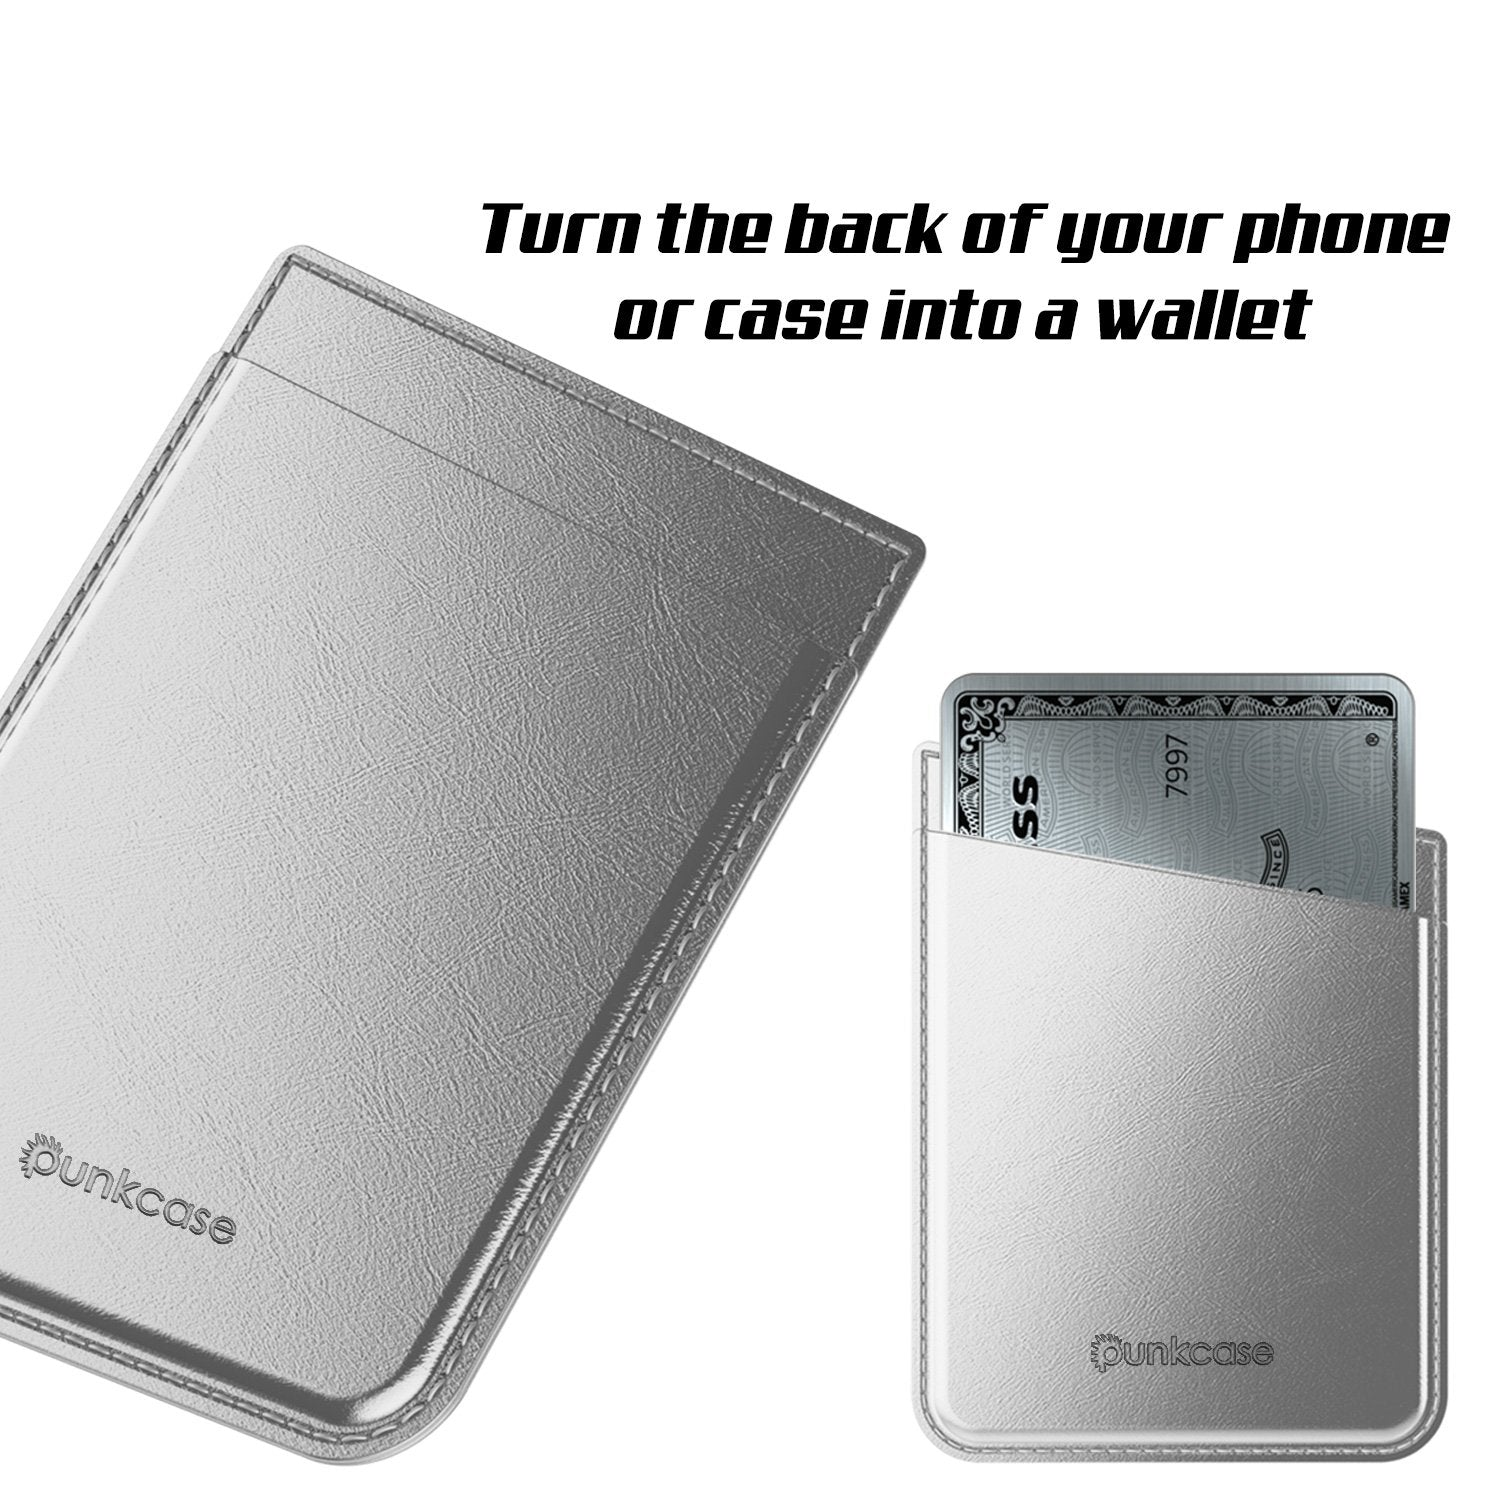 PunkCase CardStud Deluxe Stick On Wallet | Adhesive Card Holder Attachment for Back of iPhone, Android & More | Leather Pouch | [Silver]